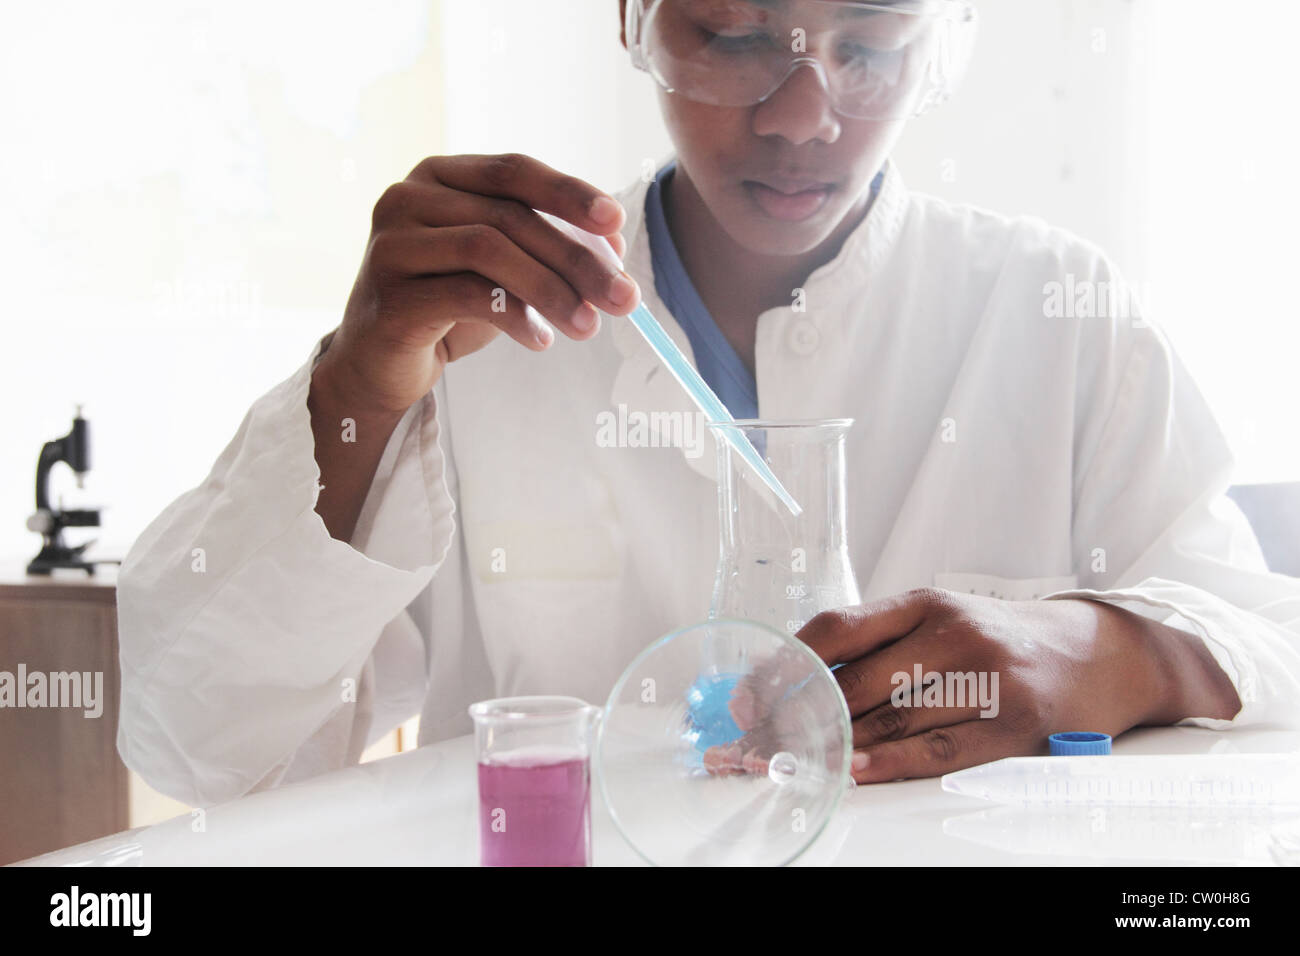 Student working in science lab - Stock Image